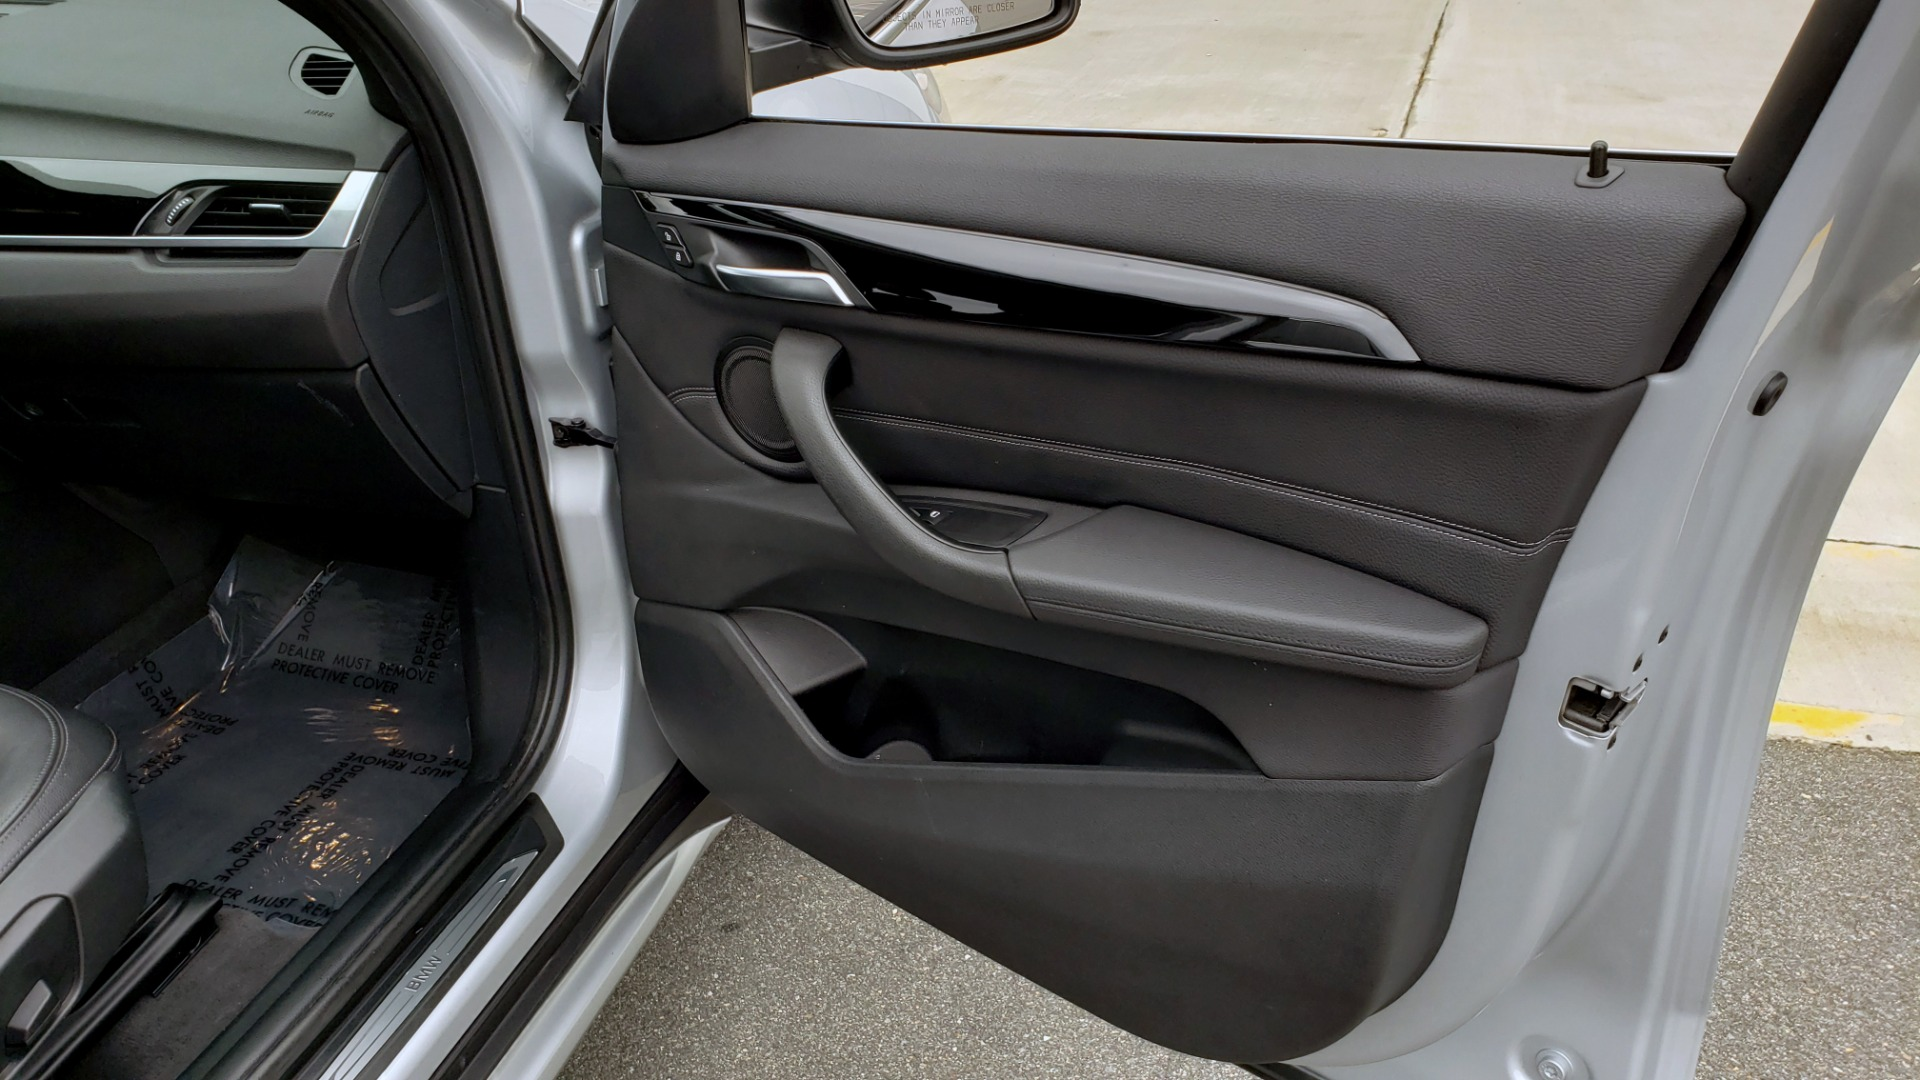 Used 2018 BMW X1 XDRIVE38I / NAV / CONV PKG / PANO-ROOF / HTD STS / REARVIEW for sale $28,995 at Formula Imports in Charlotte NC 28227 59